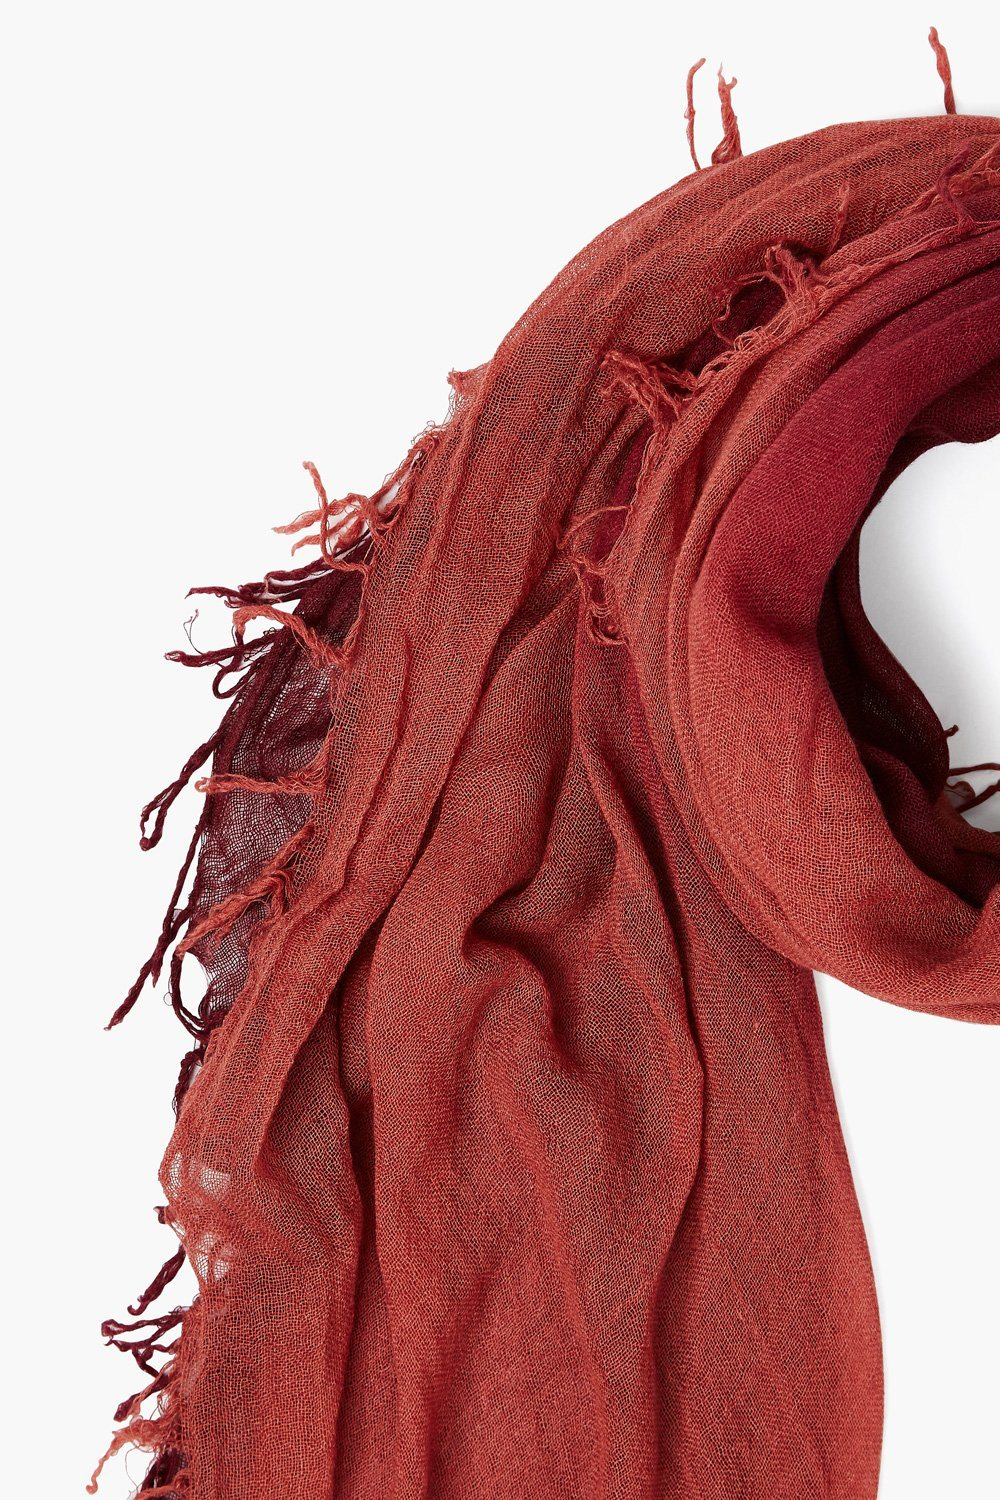 Tawny Port / Marsala Cashmere and Silk Scarf